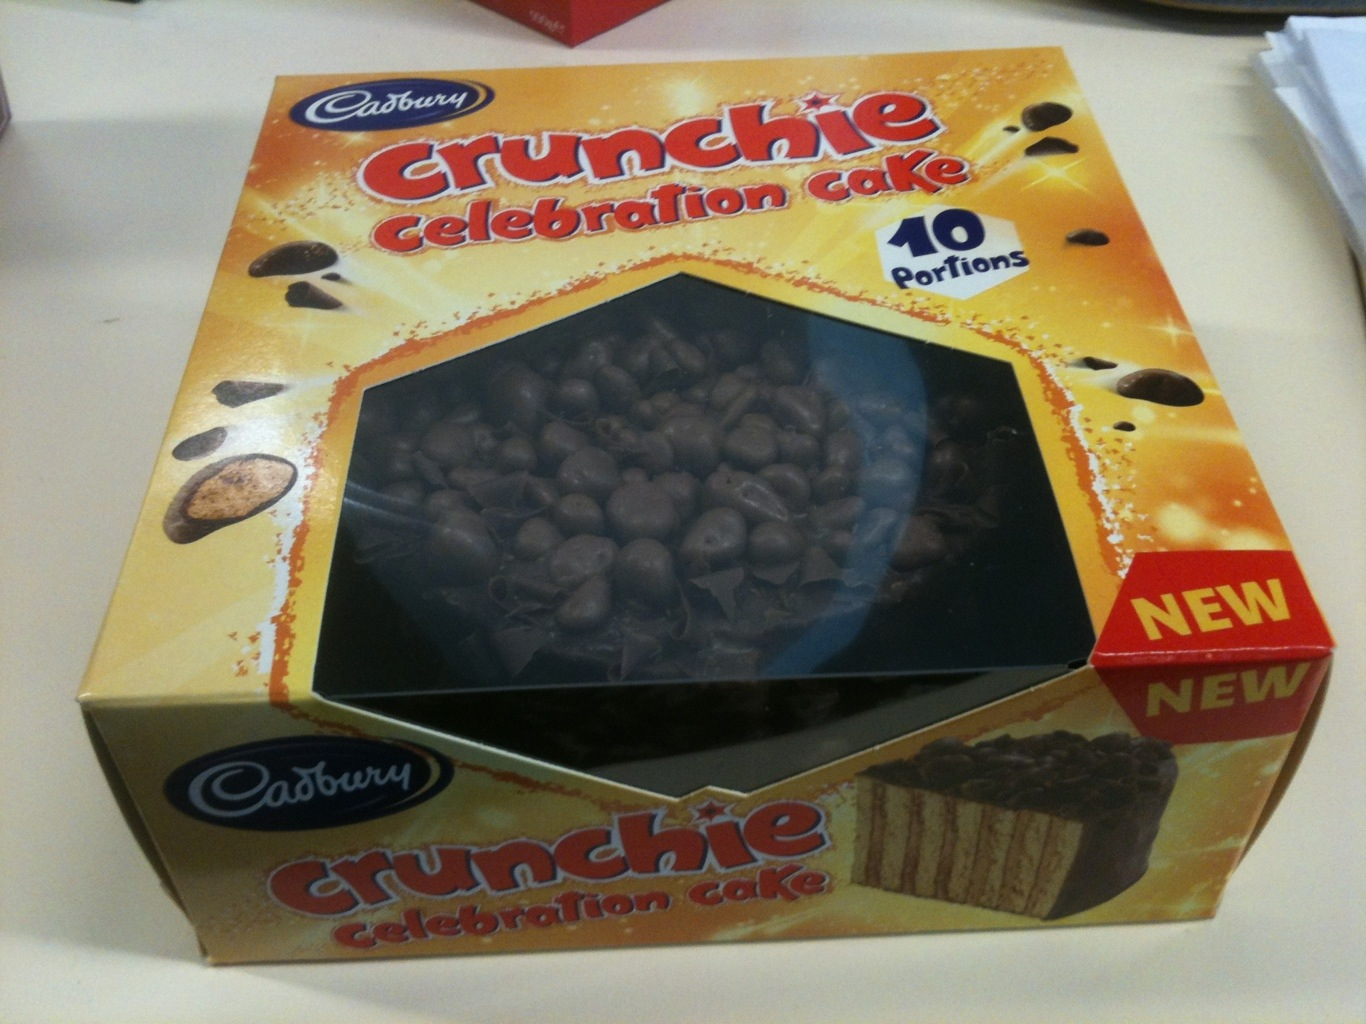 New Cadbury Crunchie cake - disappointing